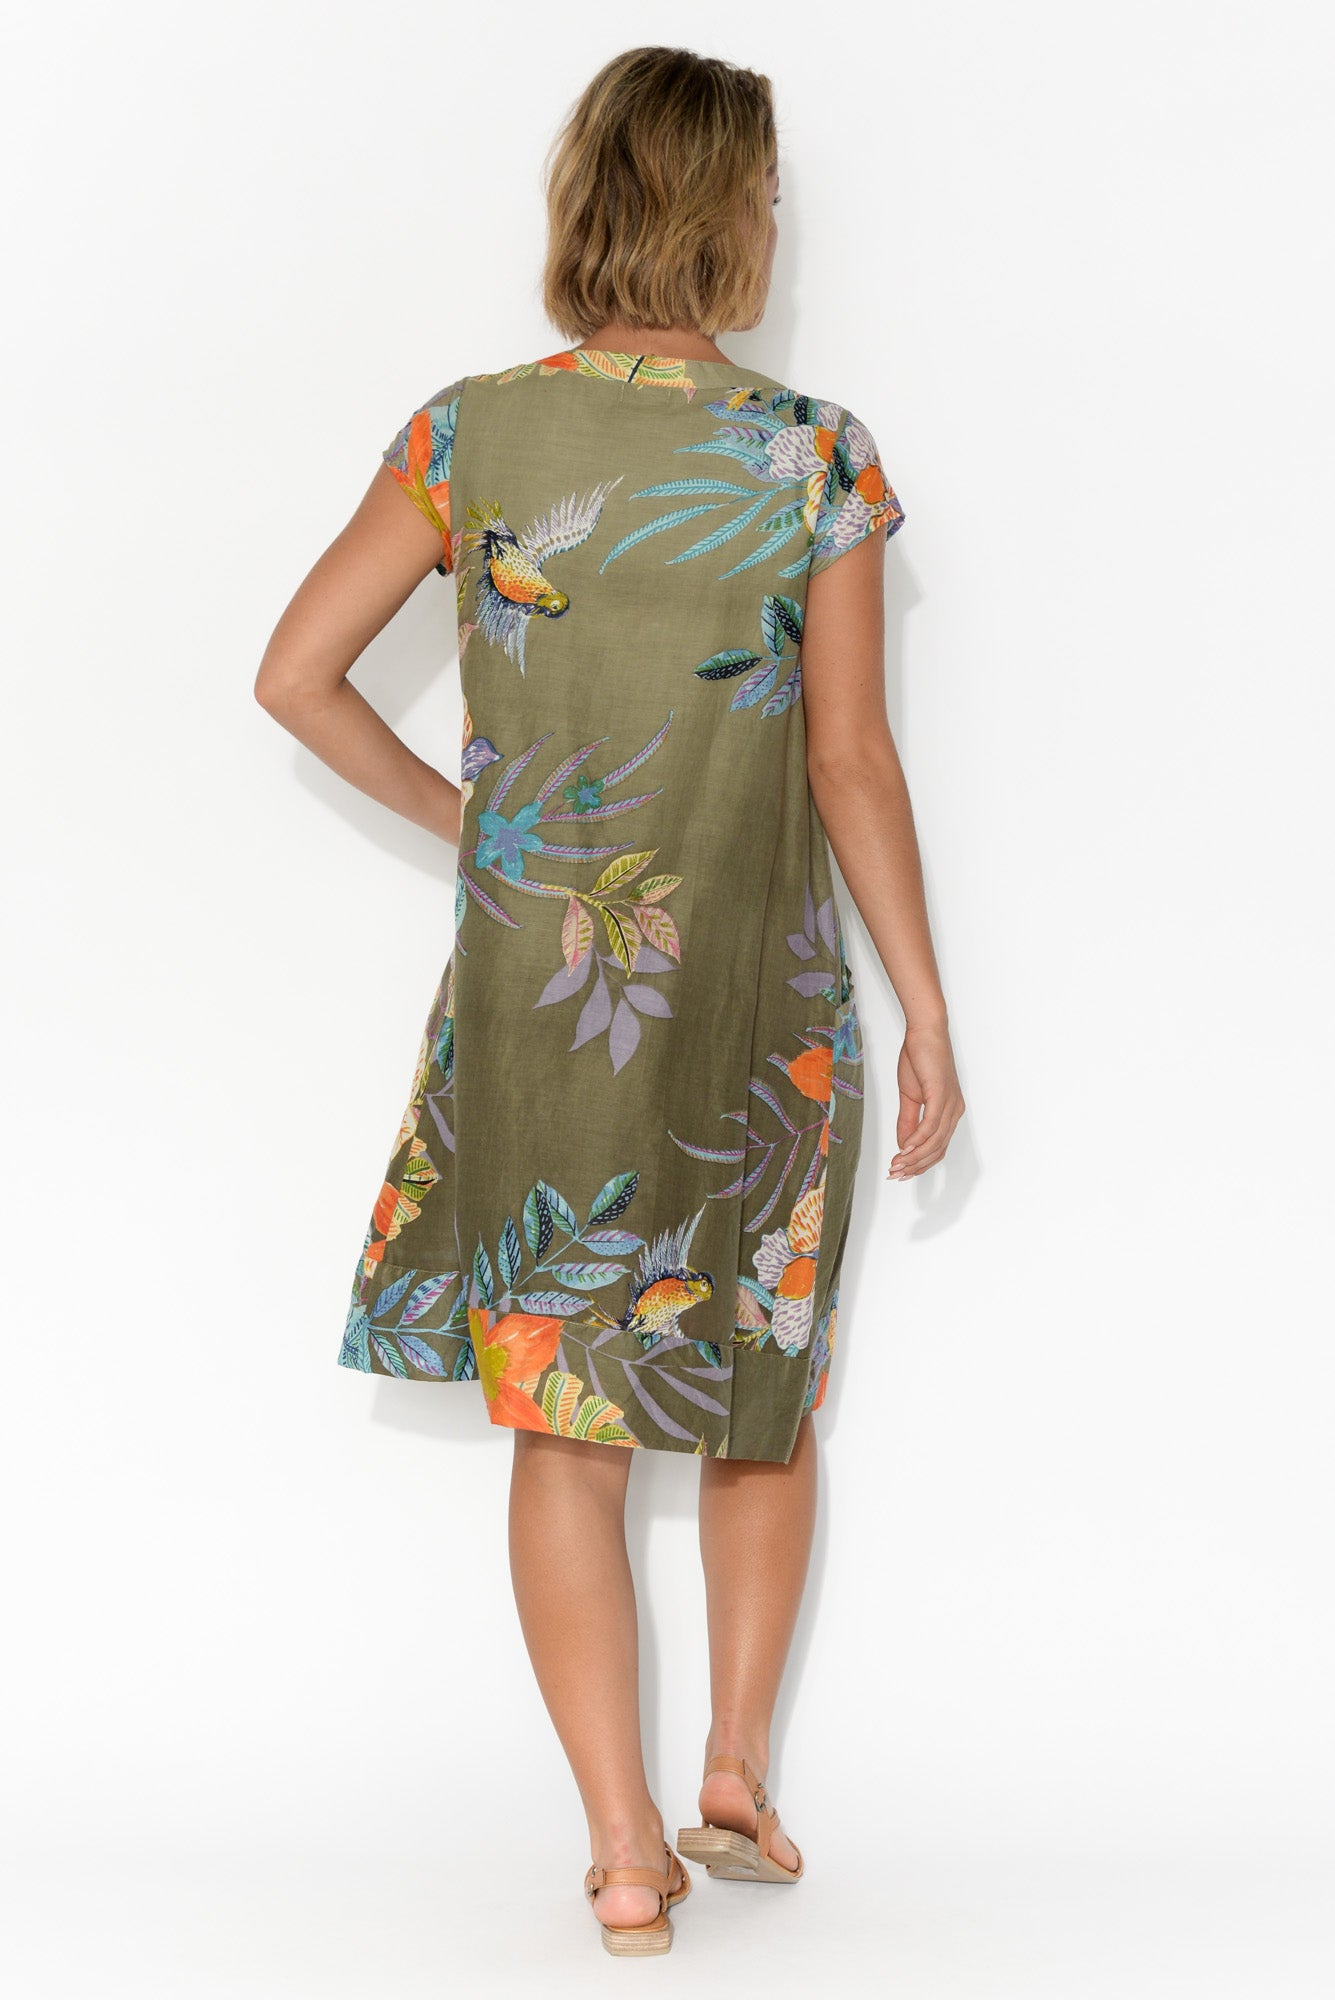 Marcoola Khaki Floral Cotton Pleat Dress